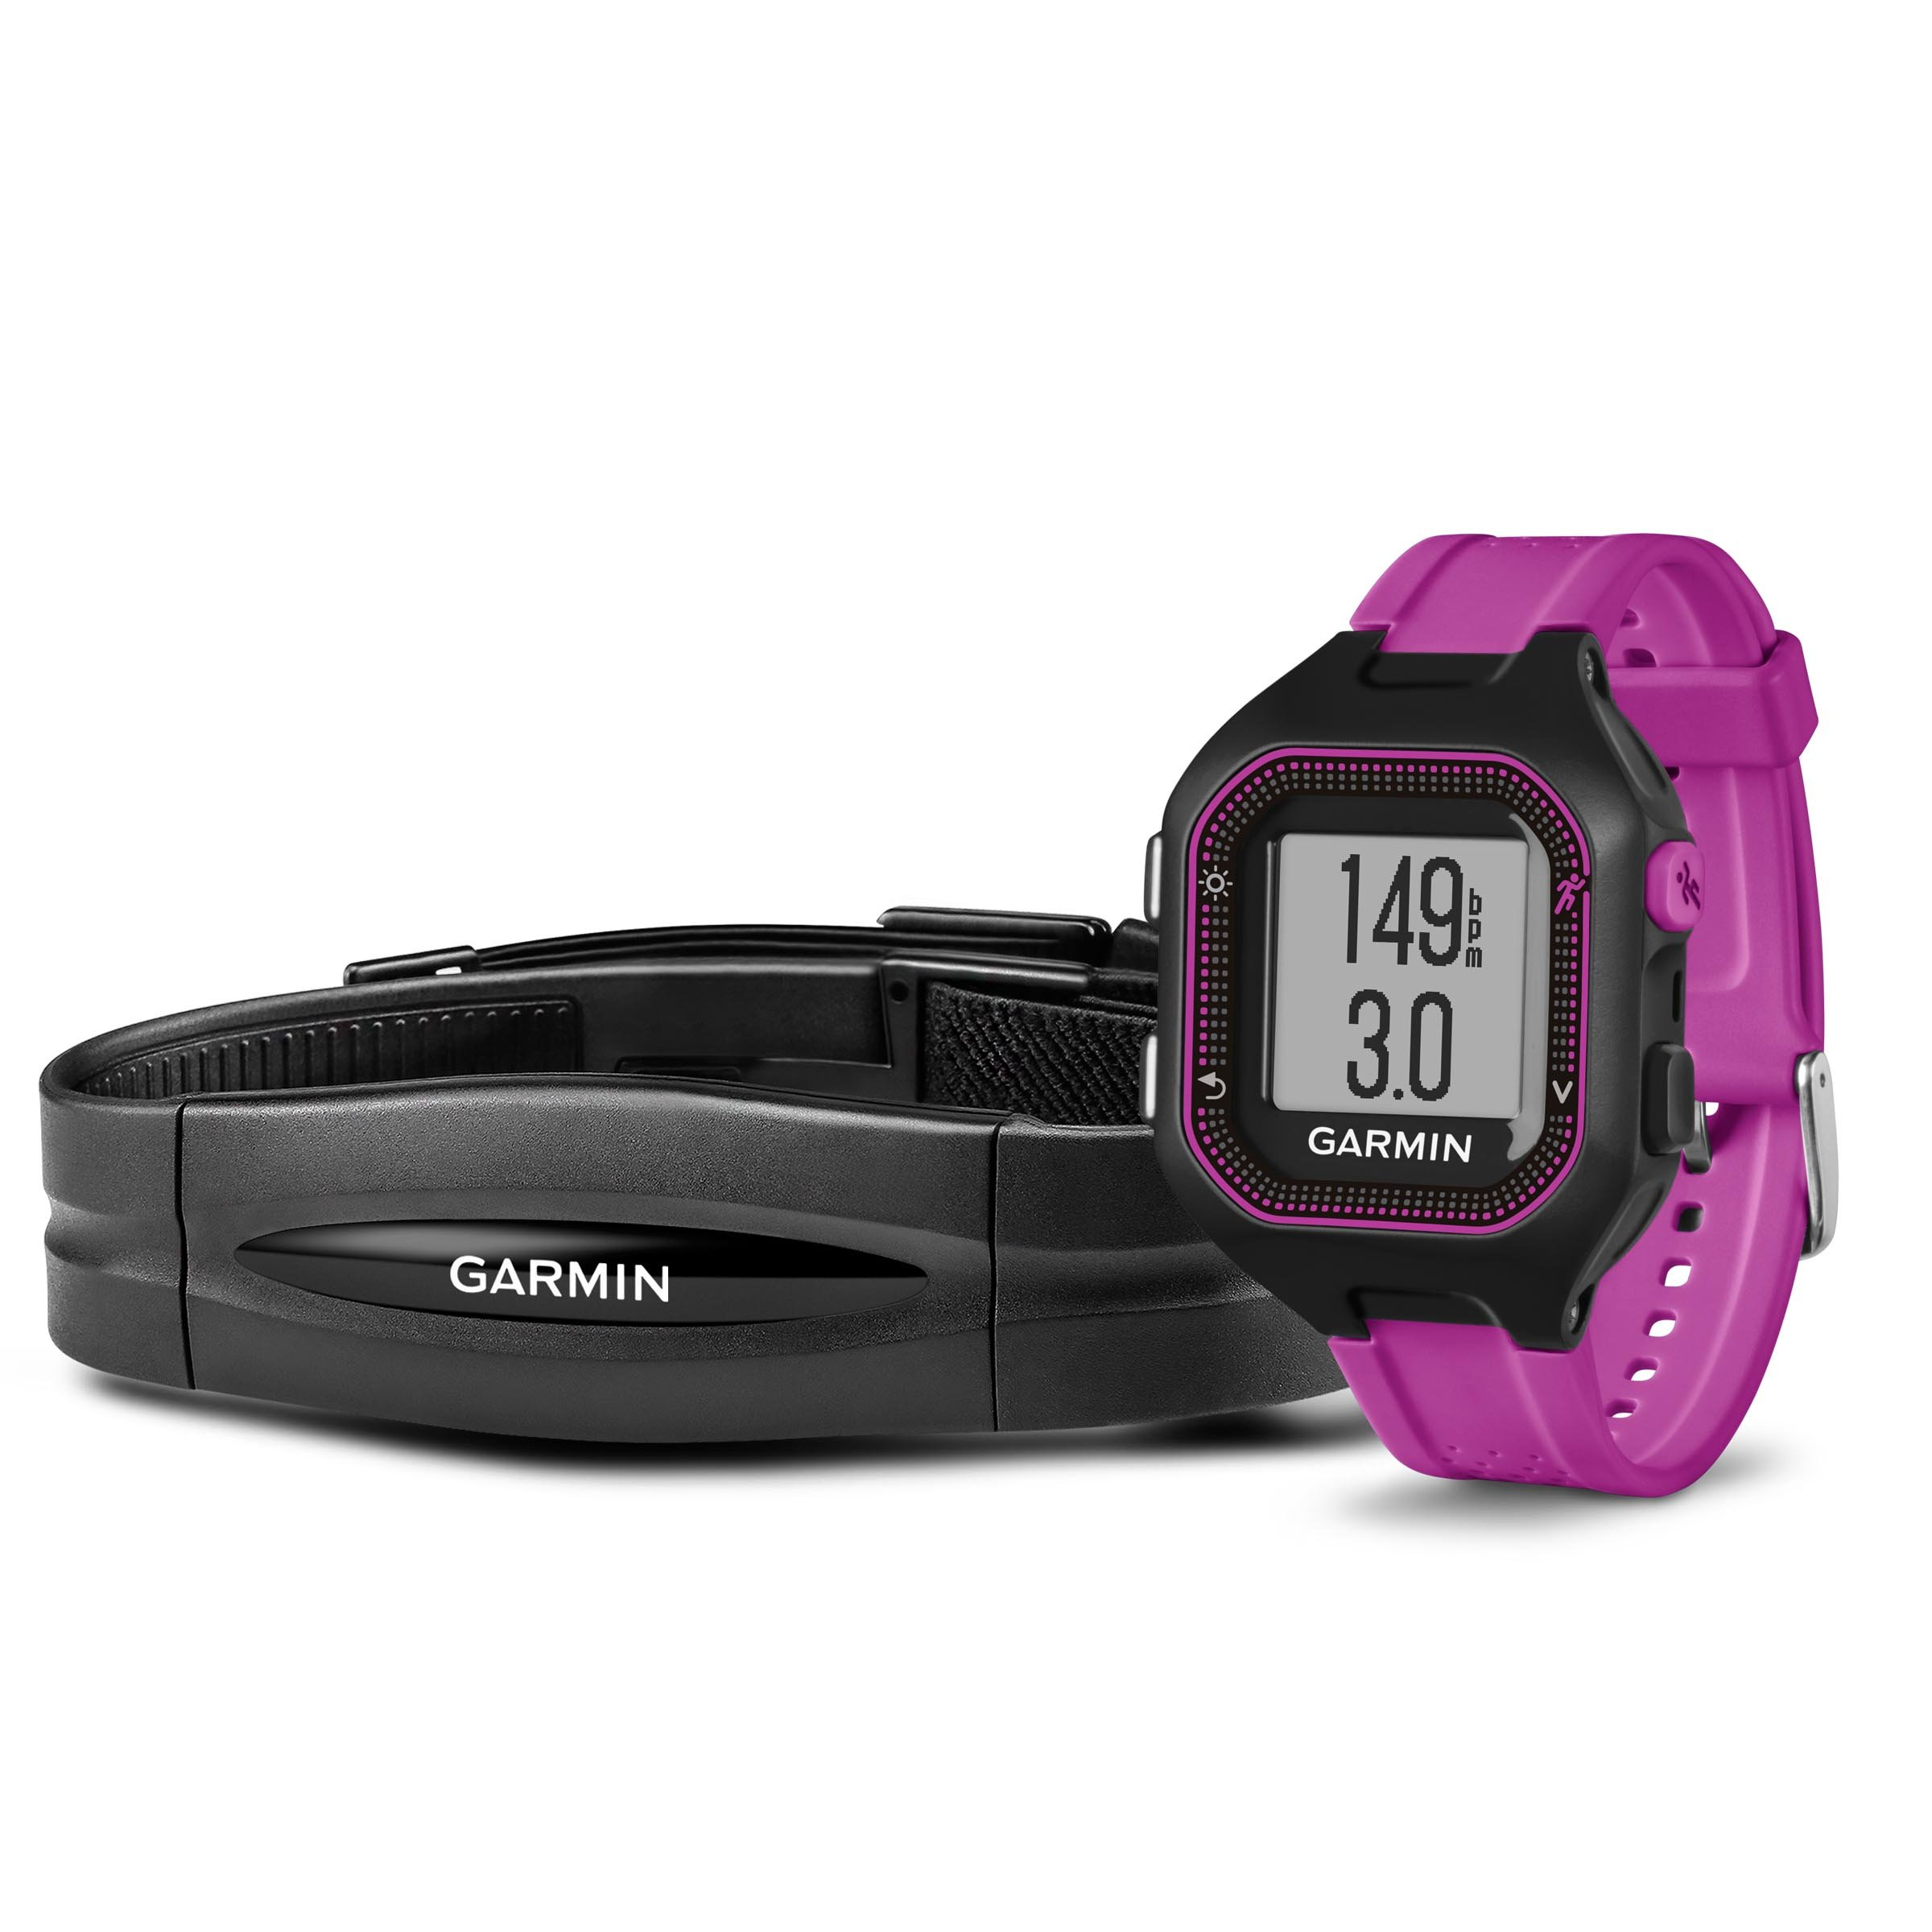 Garmin Forerunner 25 Bundle with Heart Rate Monitor, Small - Black and Purple by Garmin